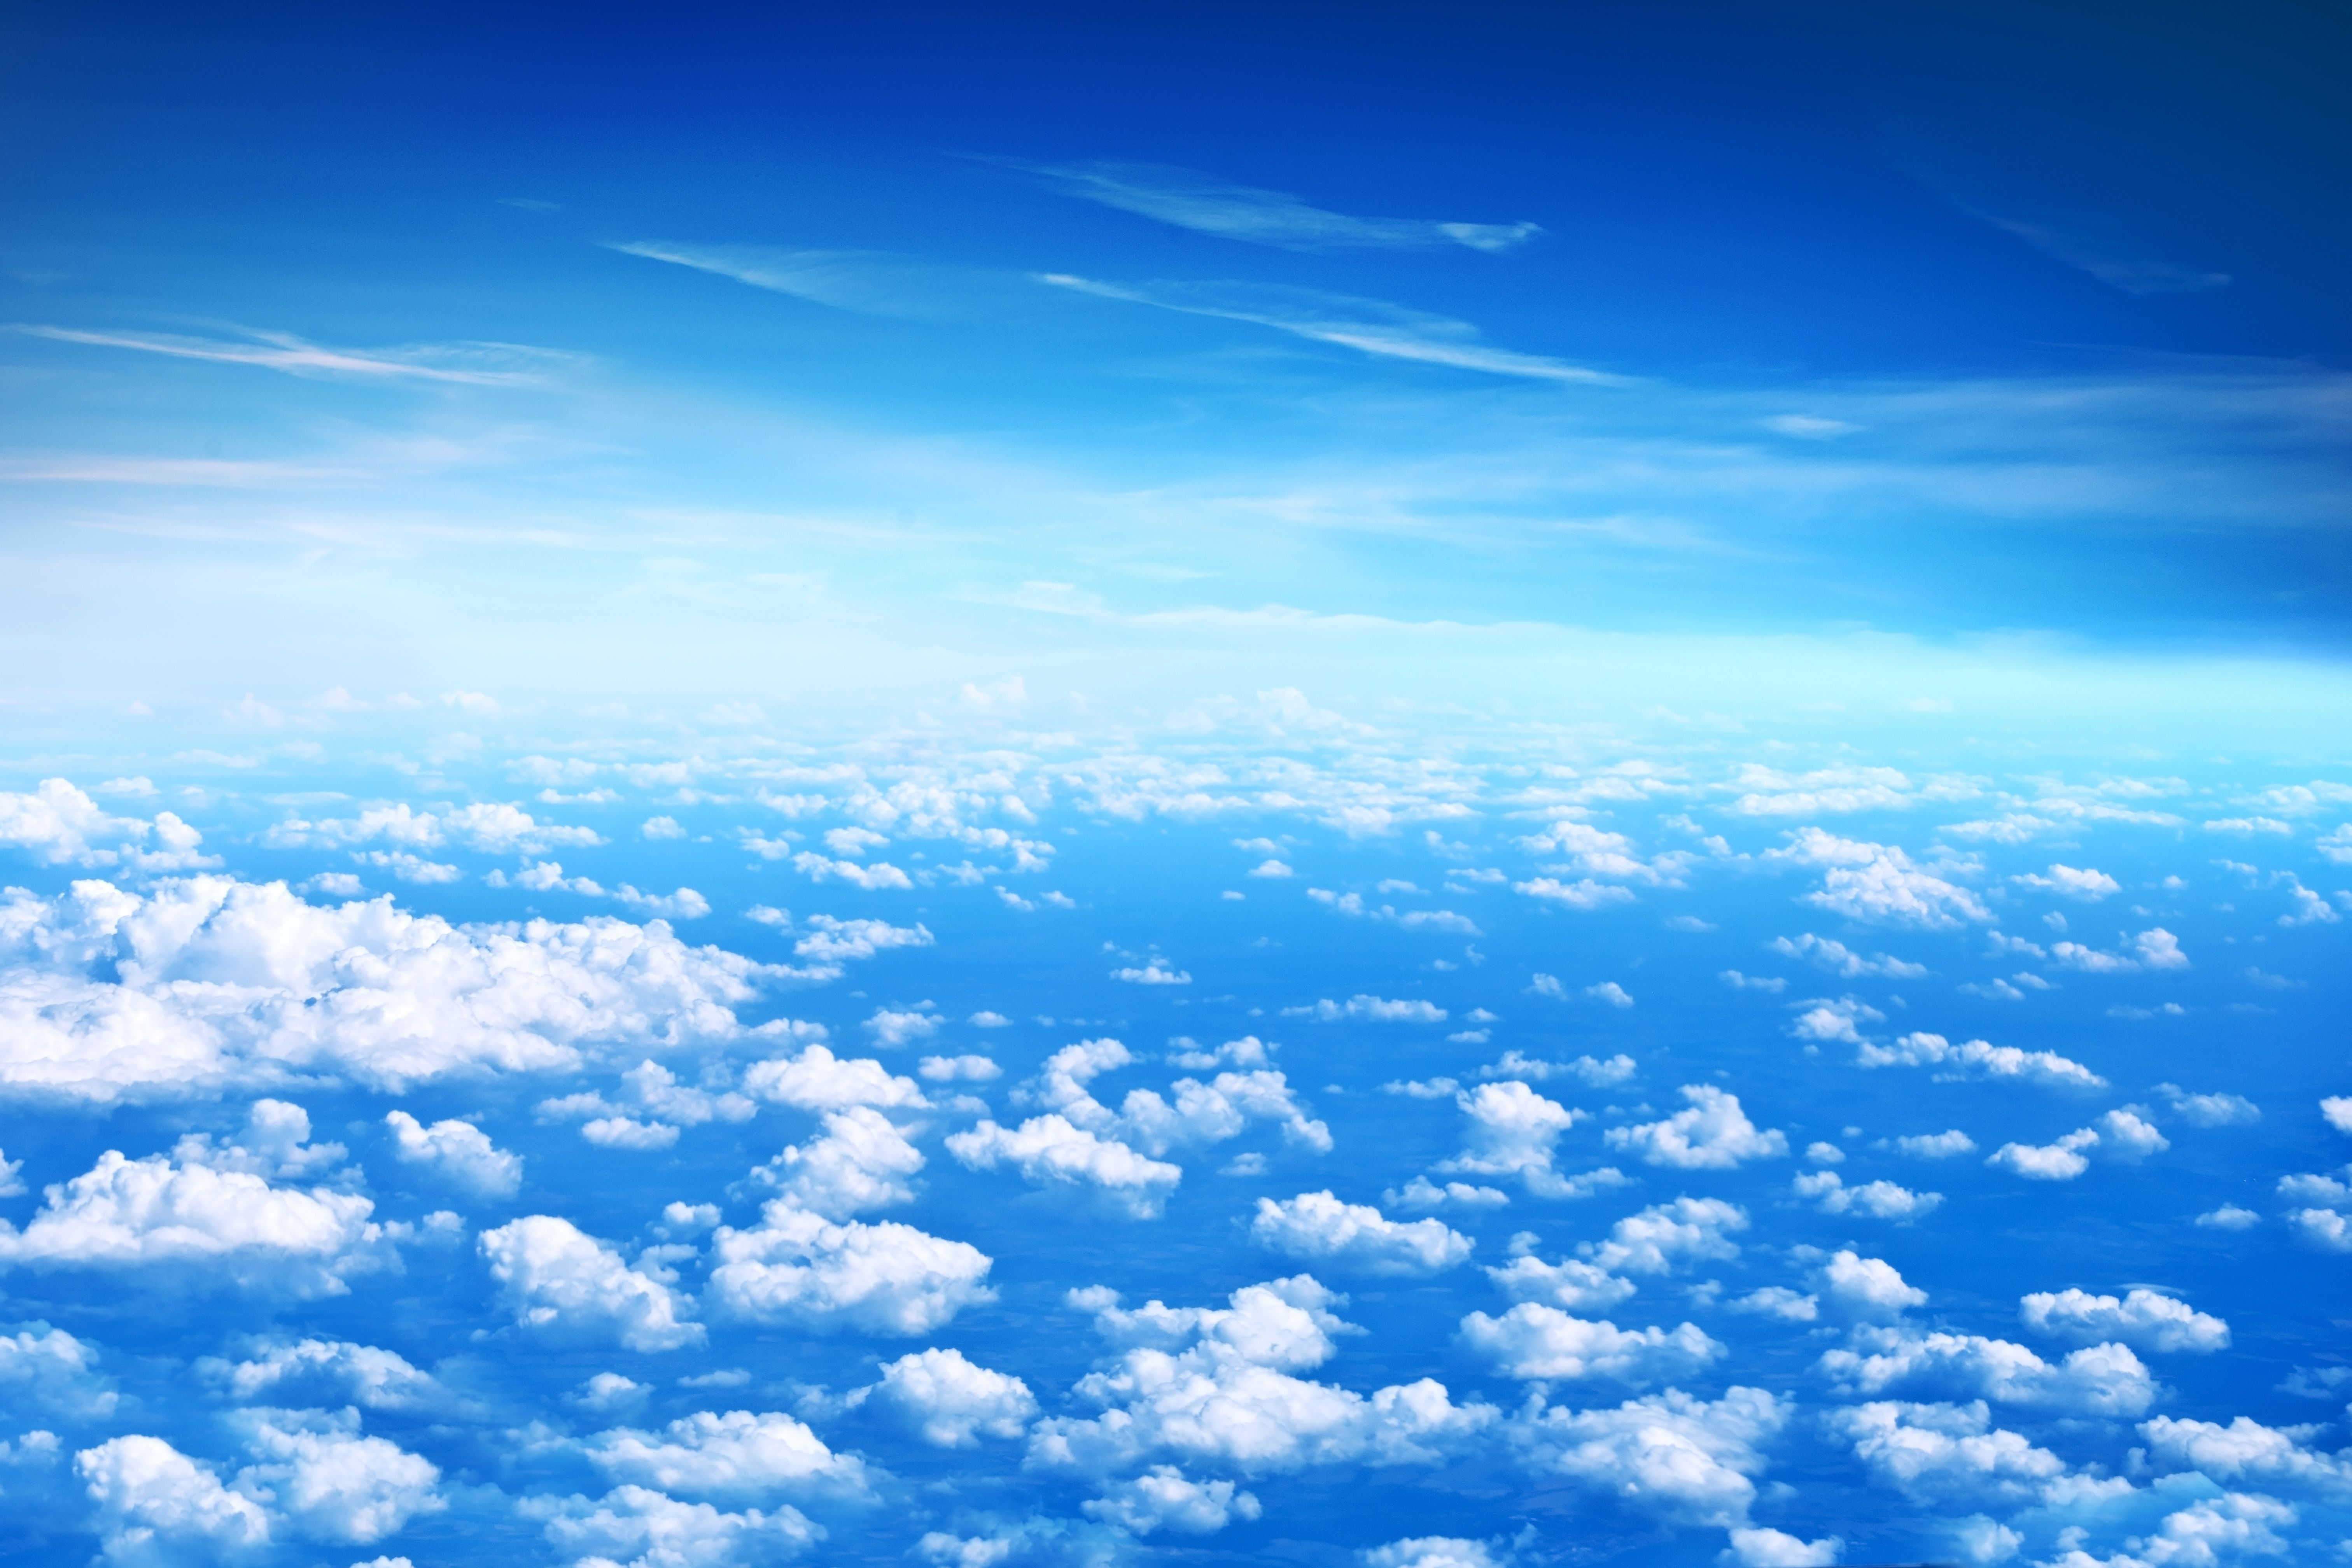 Wallpapers Clouds, Blue sky, HD, 5K, Nature,